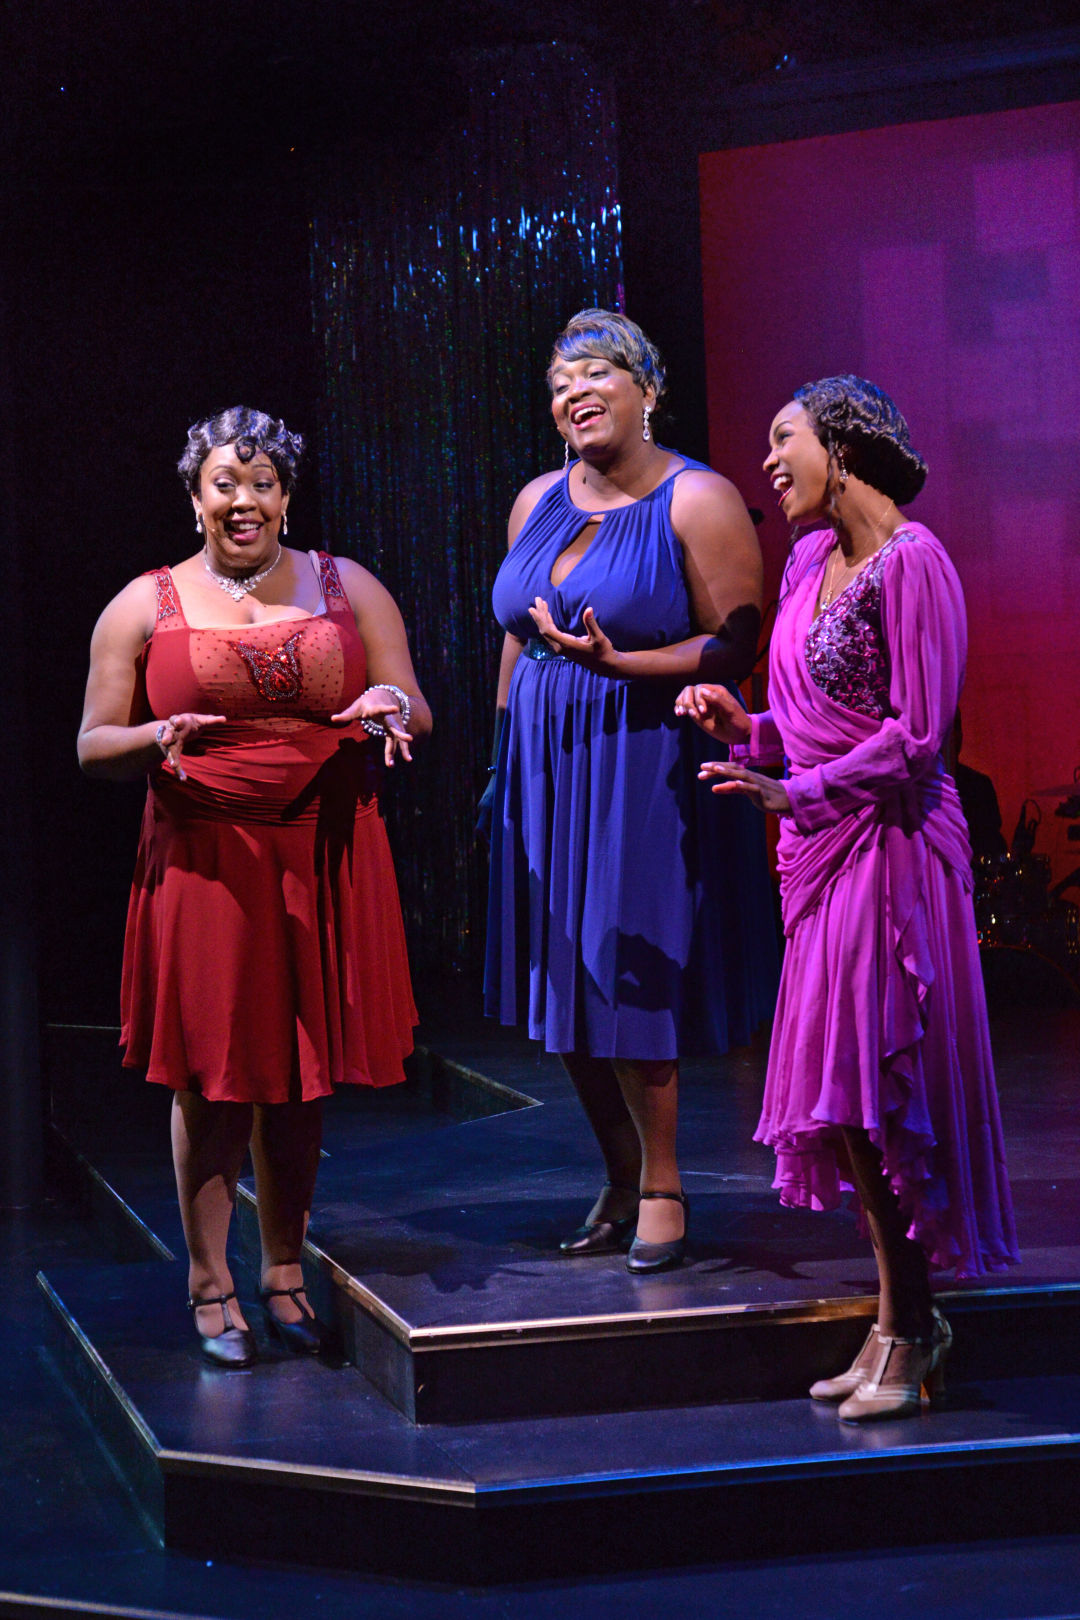 Ariel Blue, Syreeta S. Banks and JoAnna Ford during a musical number in Westcoast Black Theatre Troupe's 2017 production of Broadway in Black, which will return to WBTT's stage during its 2021-2022 season of shows